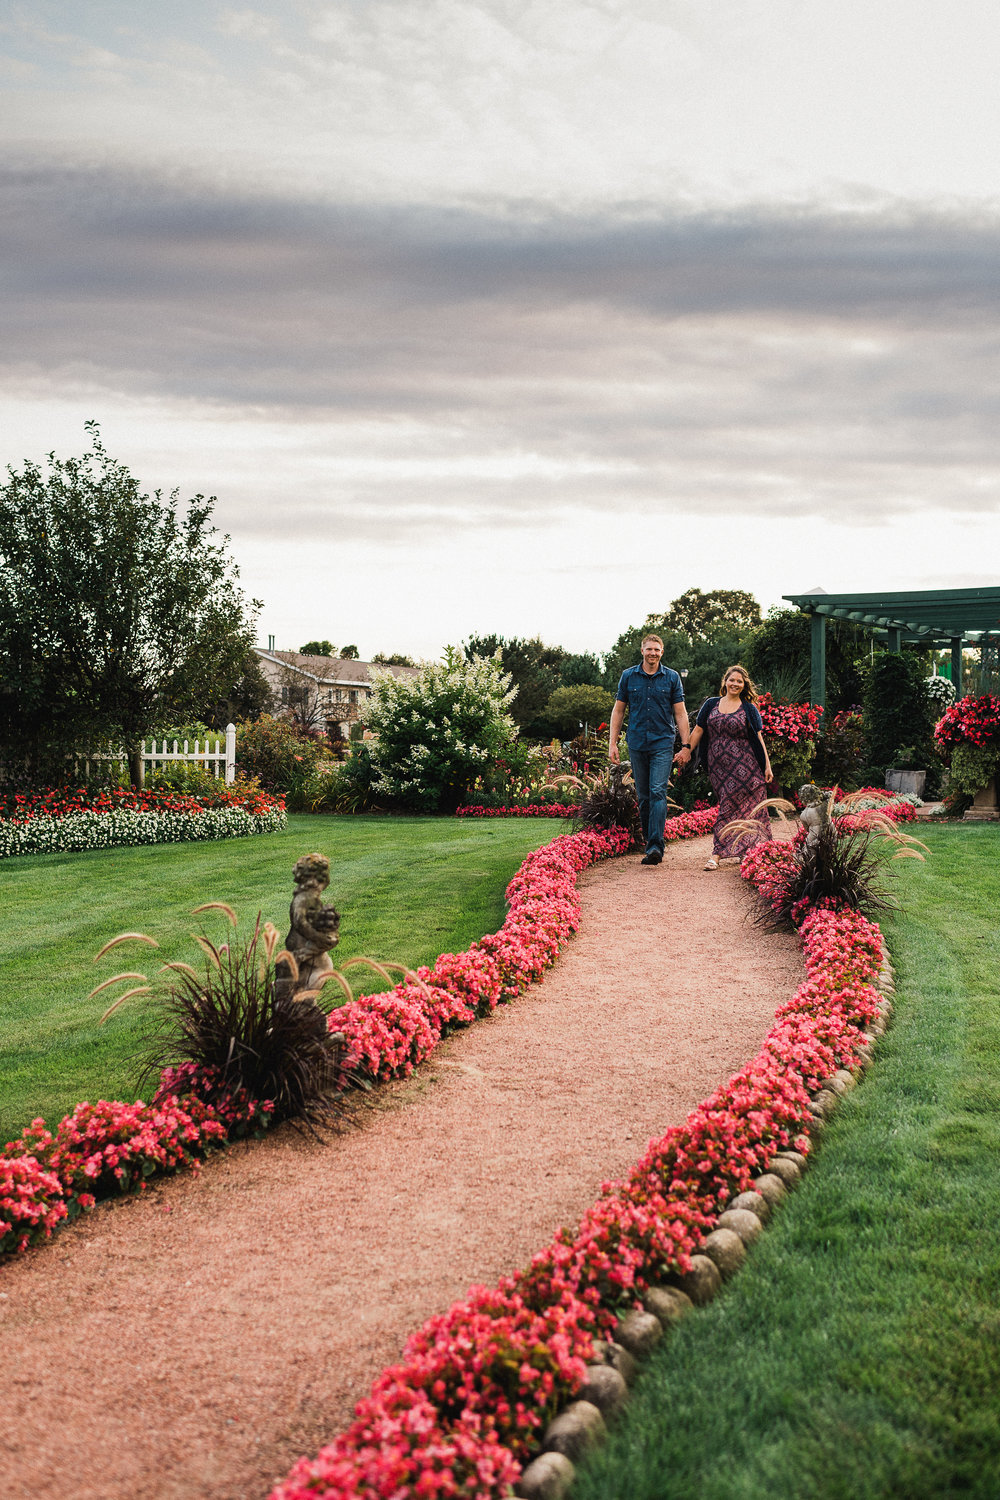 Engaged couple walks holding hands along a garden path lined with pink flowers.